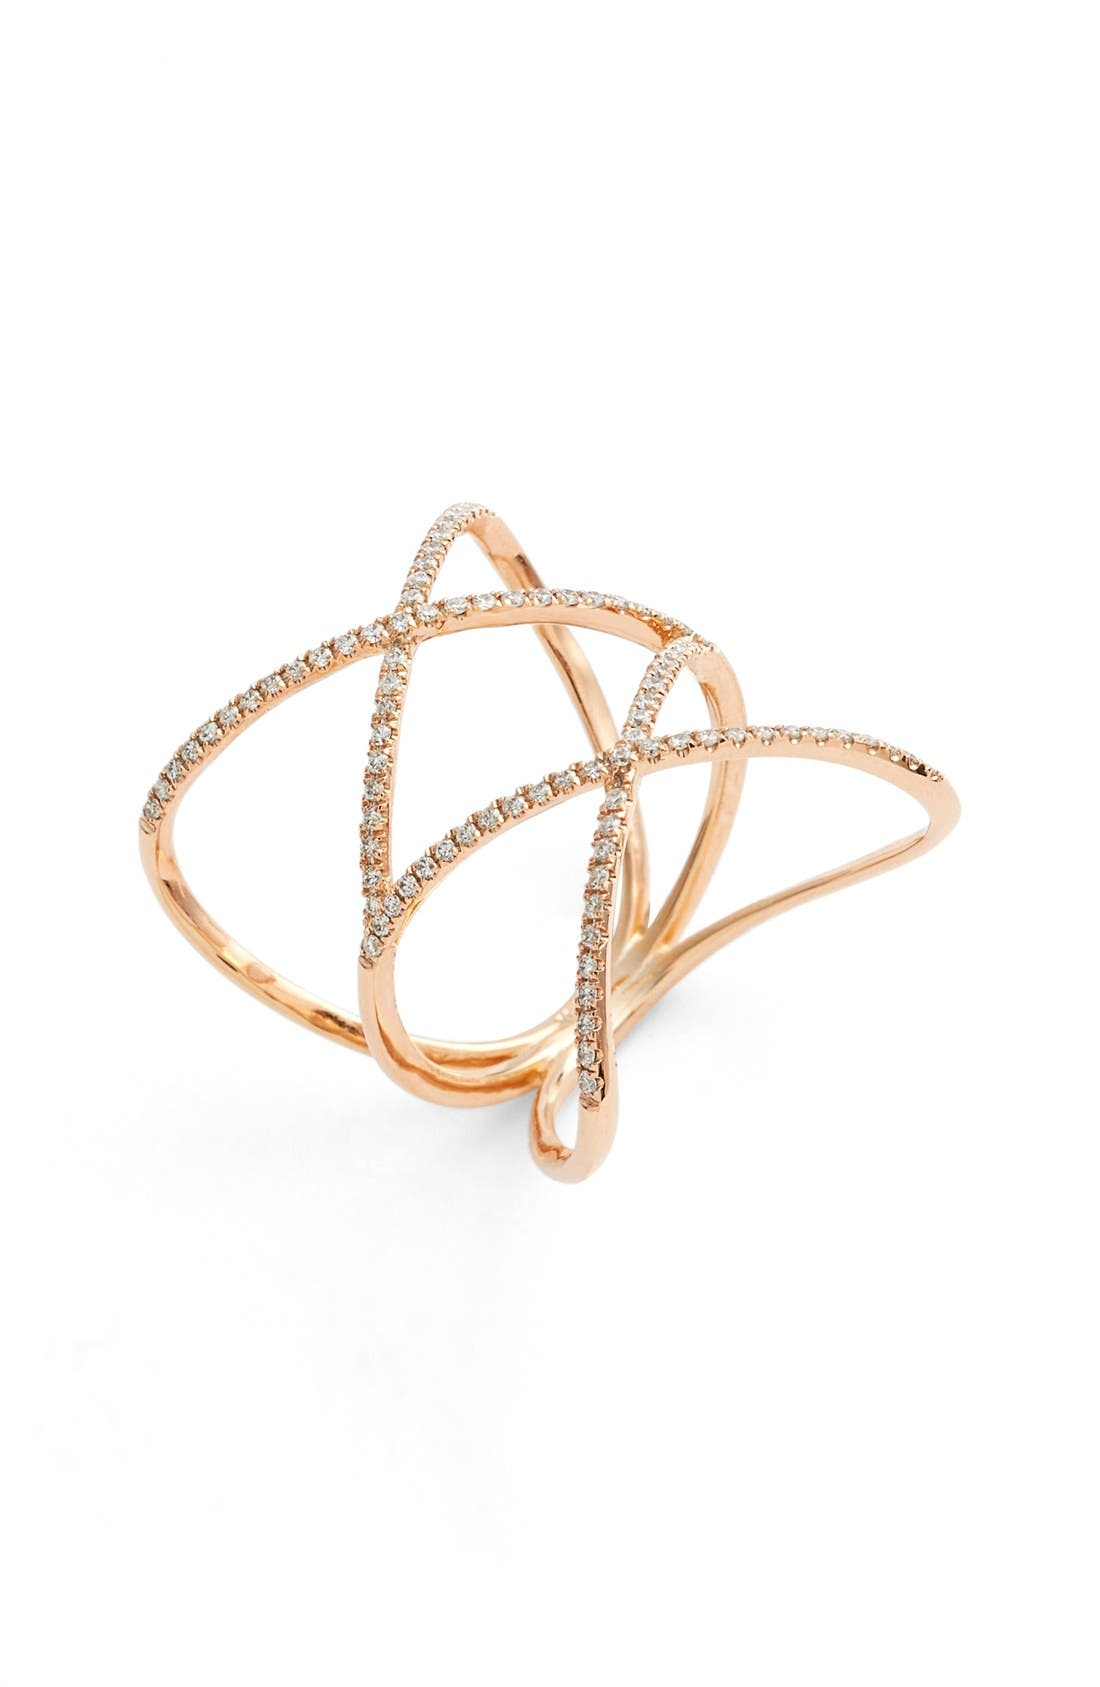 Main Image - Bony Levy Diamond Double Crisscross Ring (Nordstrom Exclusive)